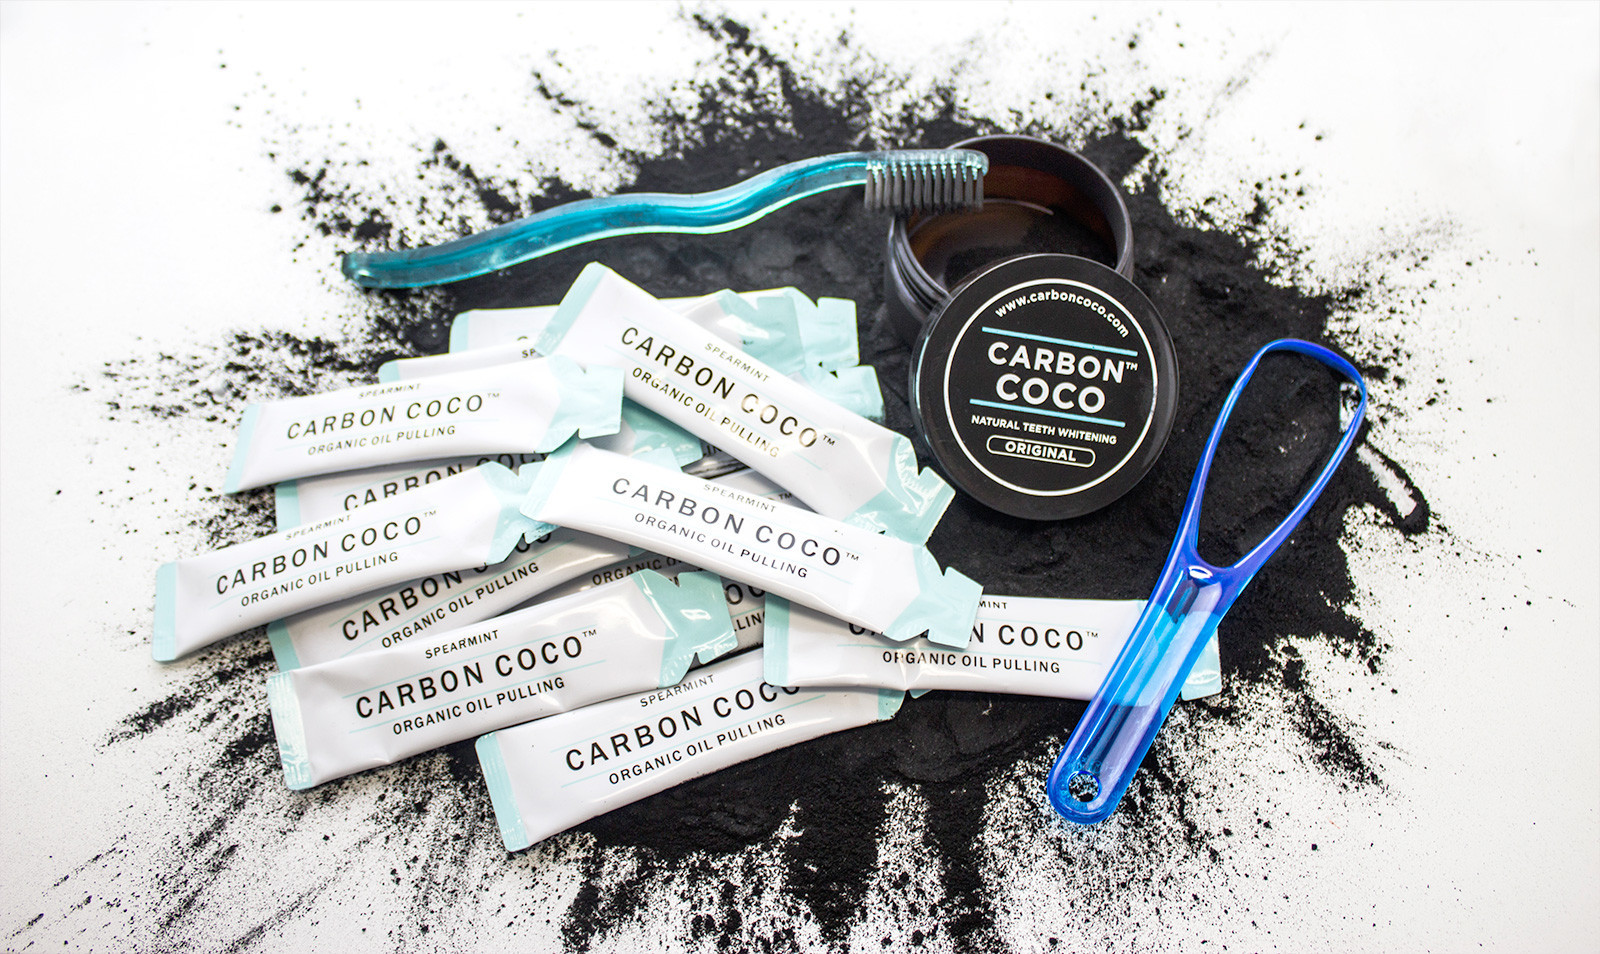 carbon coco activated charcoal teeth whitening slumber party beauty.jpg